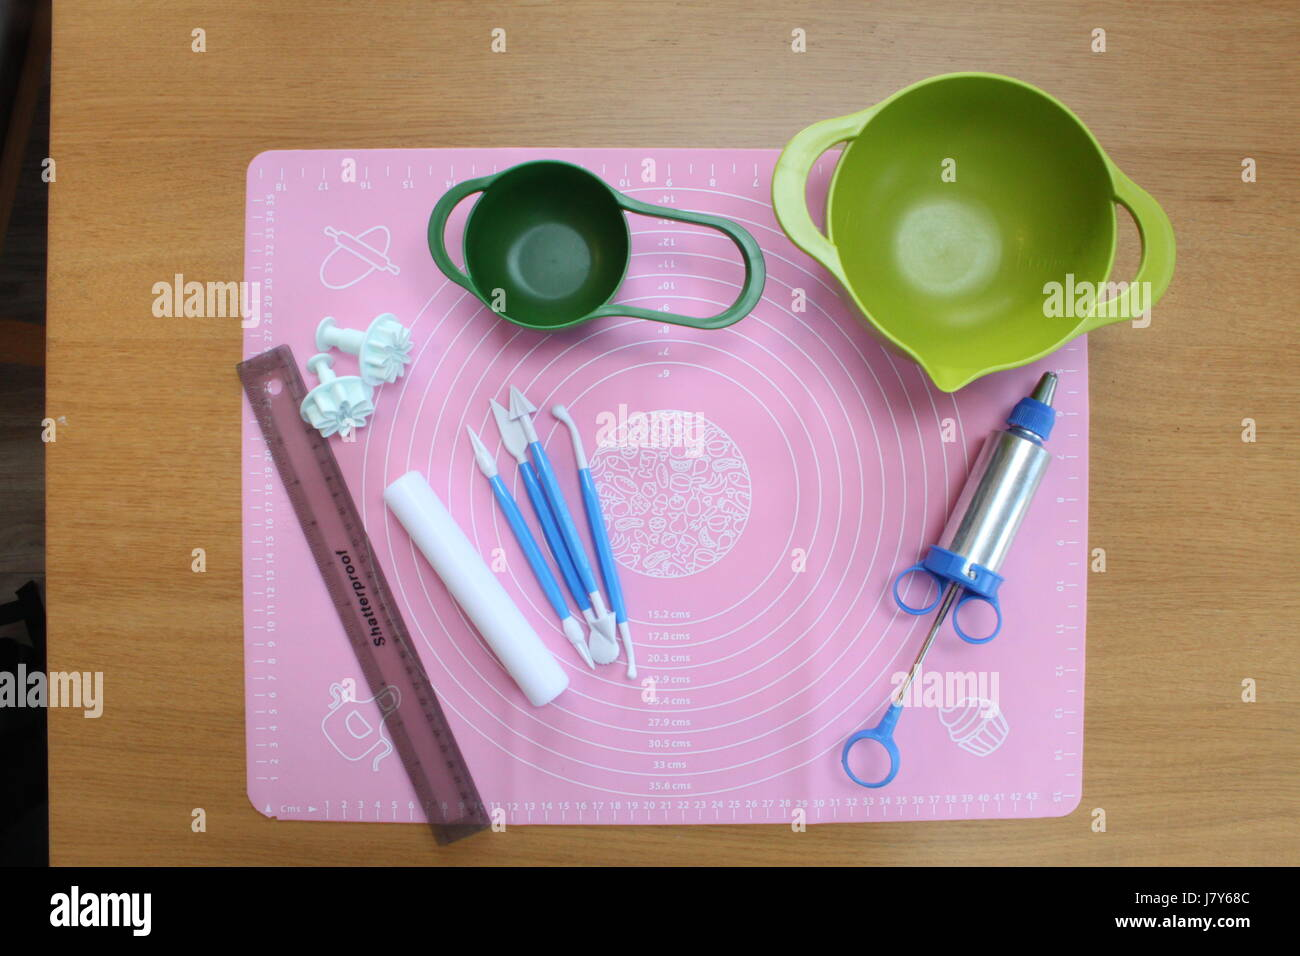 Overhead photo of cake decorating and icing equipment - Stock Image